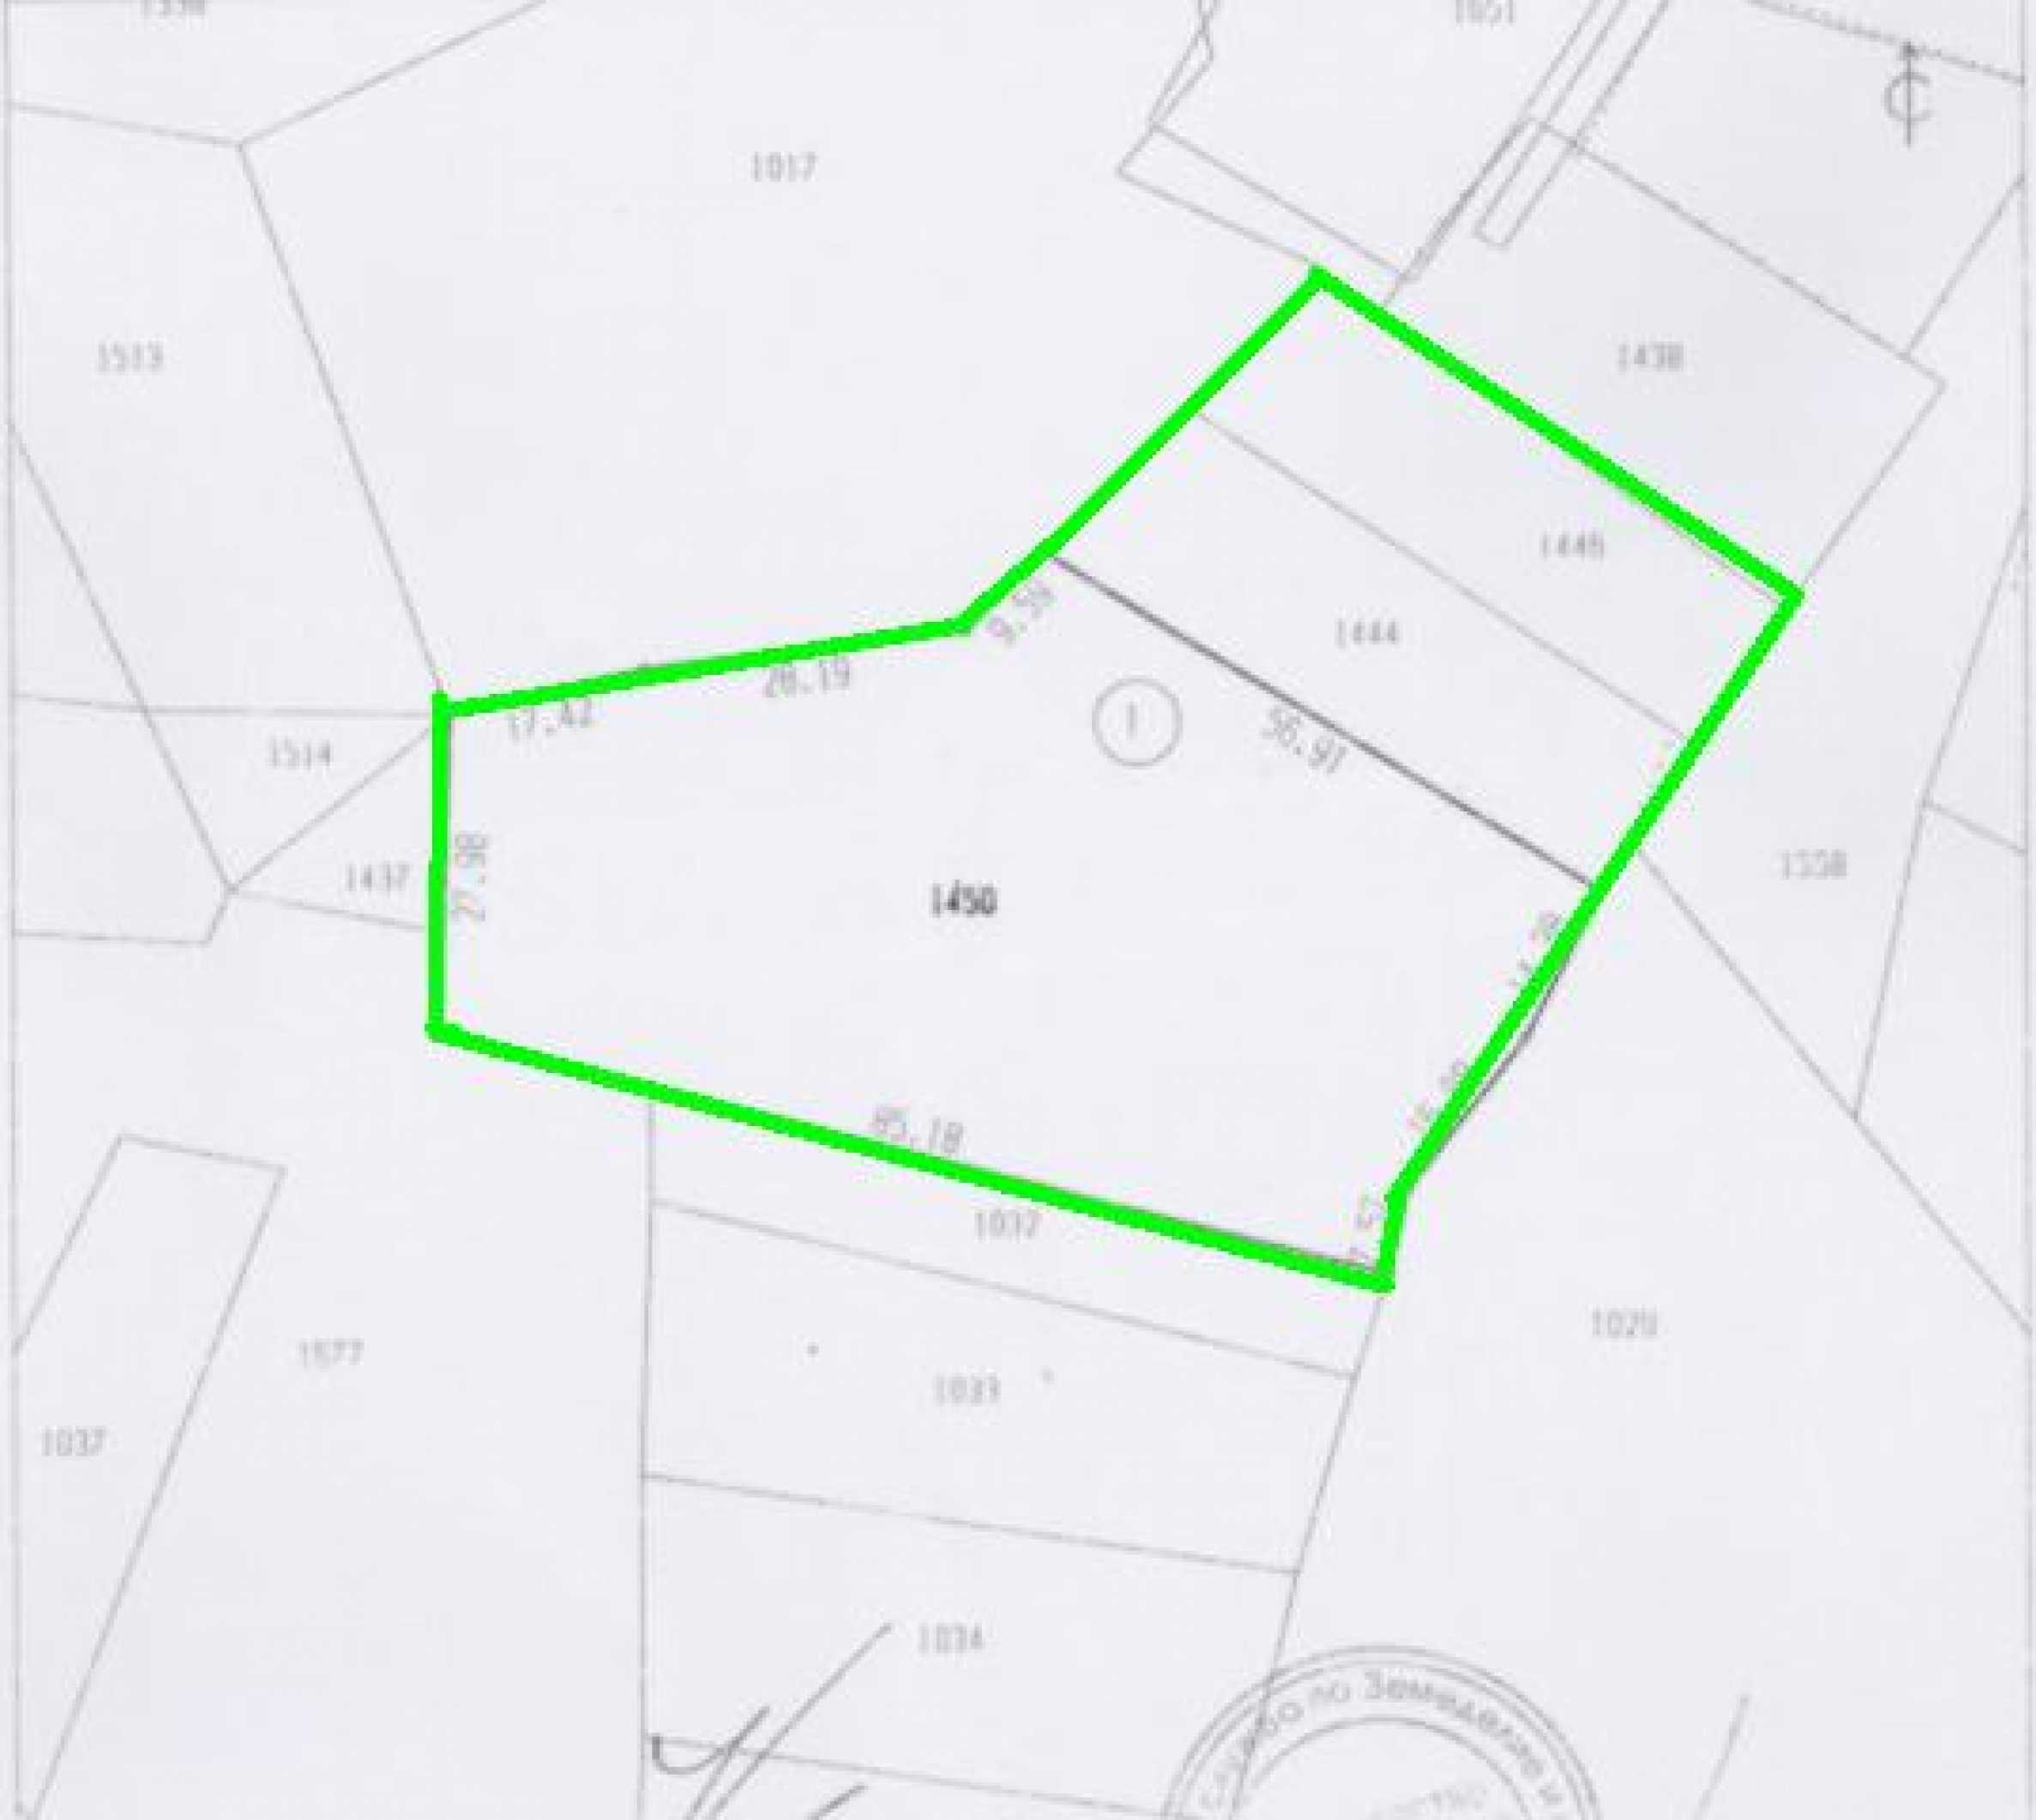 Three neighbouring plots of land in Rudartsi 18